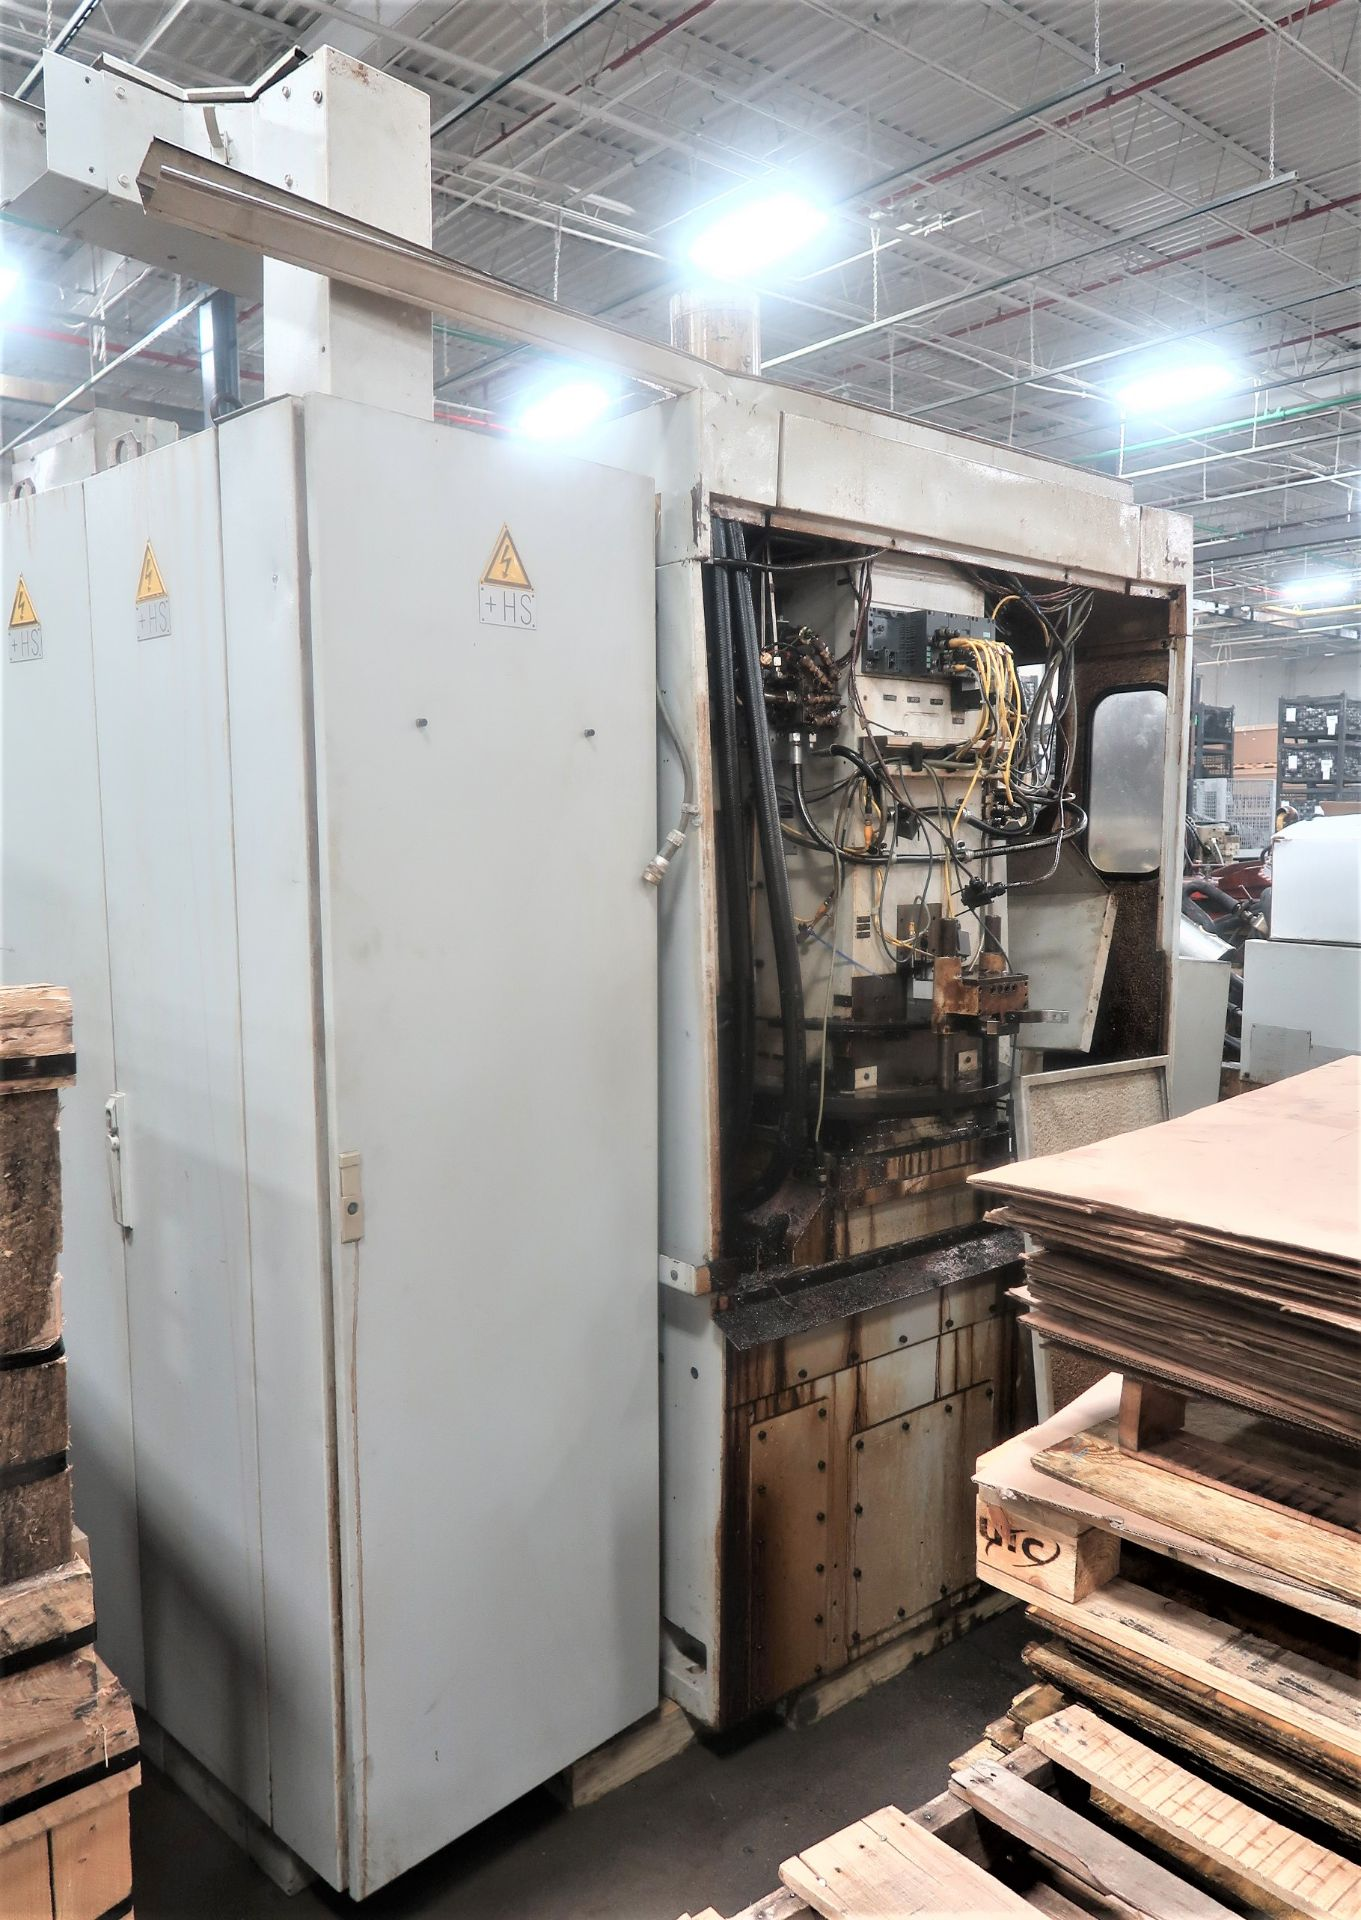 Lot 18C - Liebherr LC153 6-Axis CNC Gear Hobber w/Auto Load Table, S/N 0130 (out of service, require Repair)